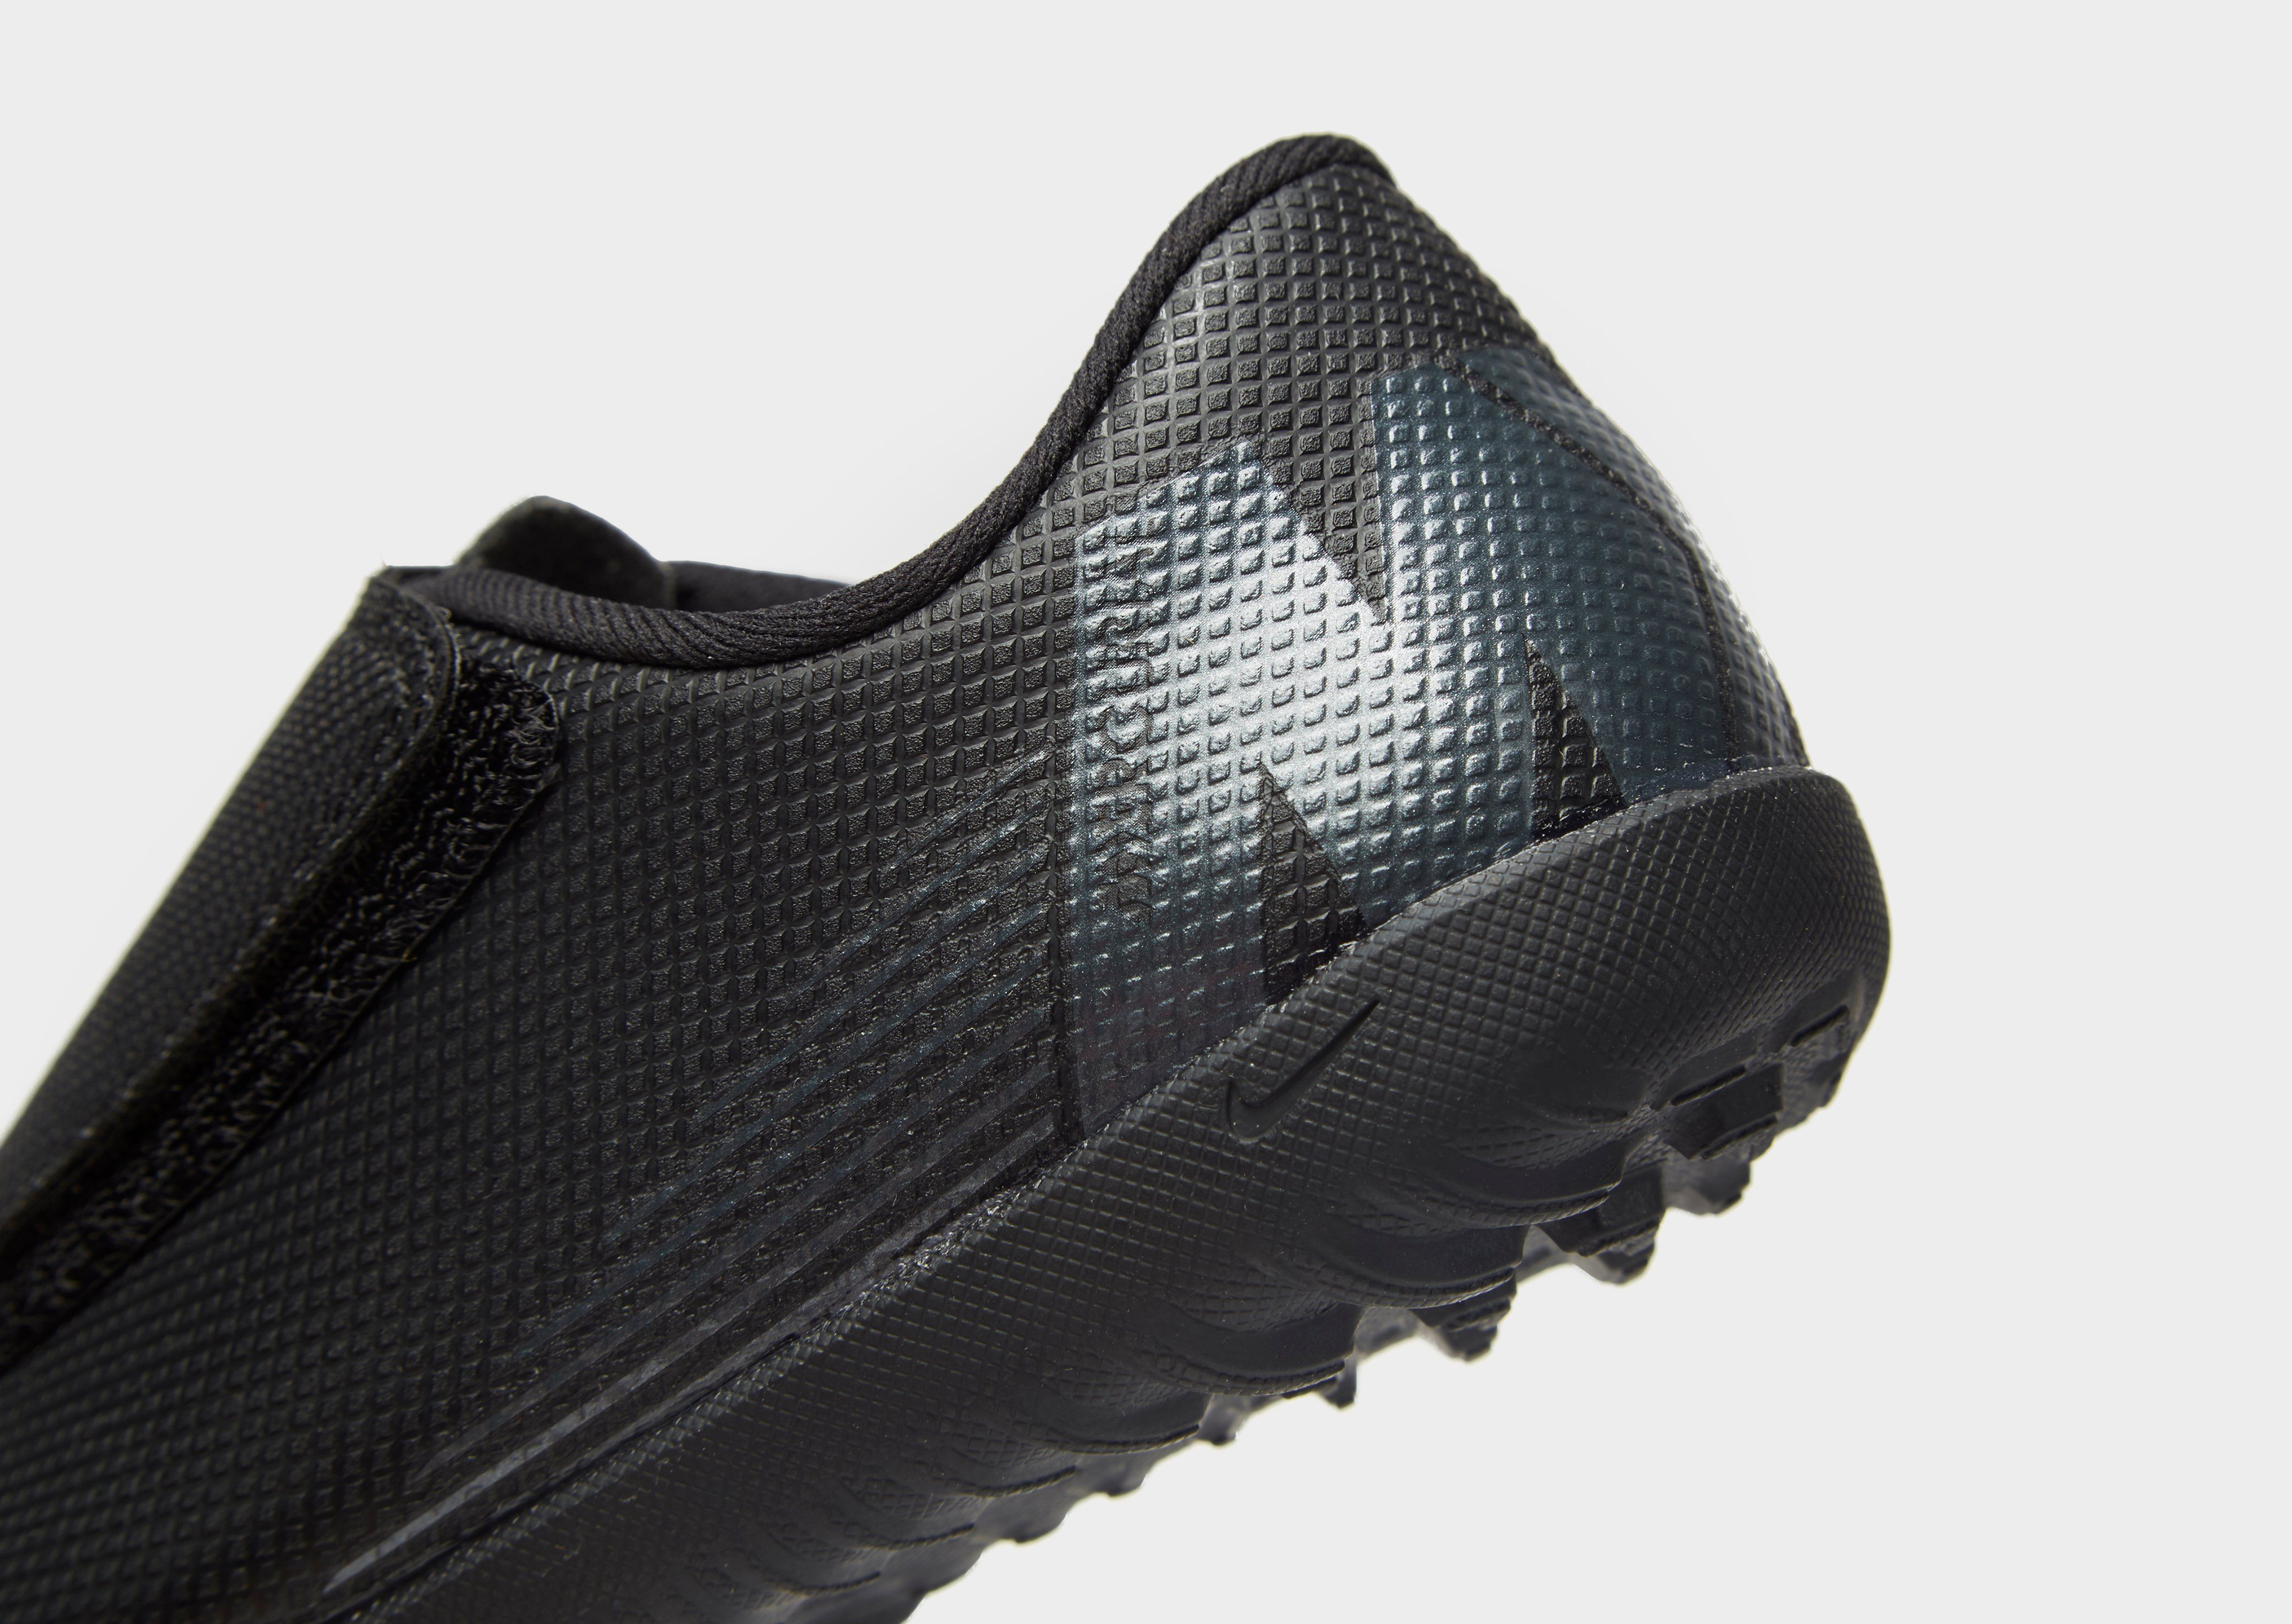 Nike Stealth Ops Mercurial Vapor TF